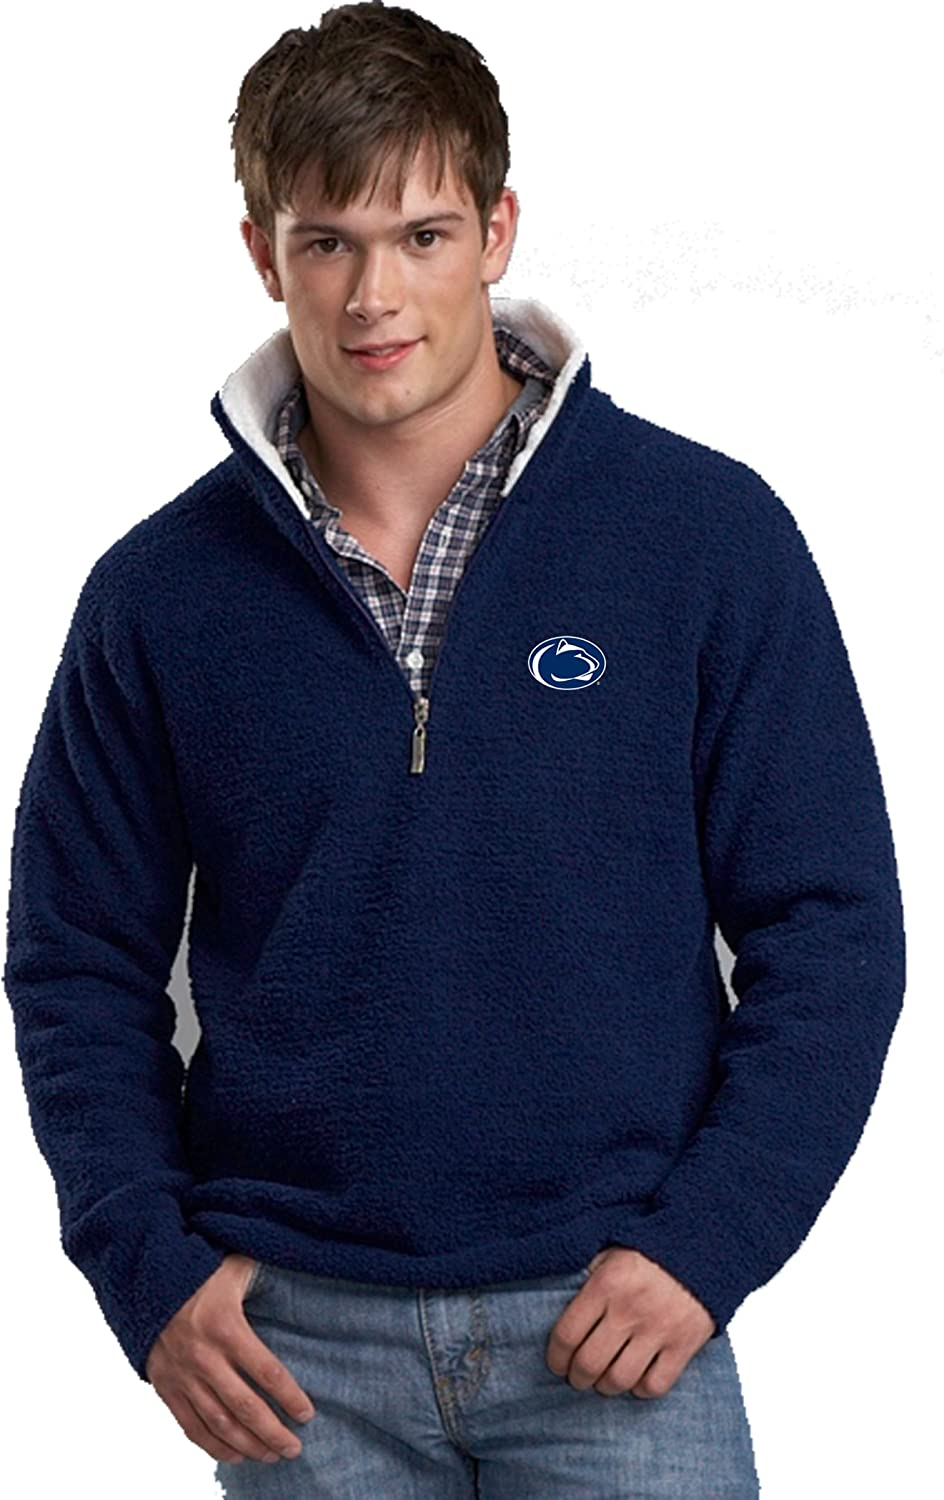 NCAA Penn State Nittany Lions Kashwere U Half Zip Pullover With Contrasting Collar